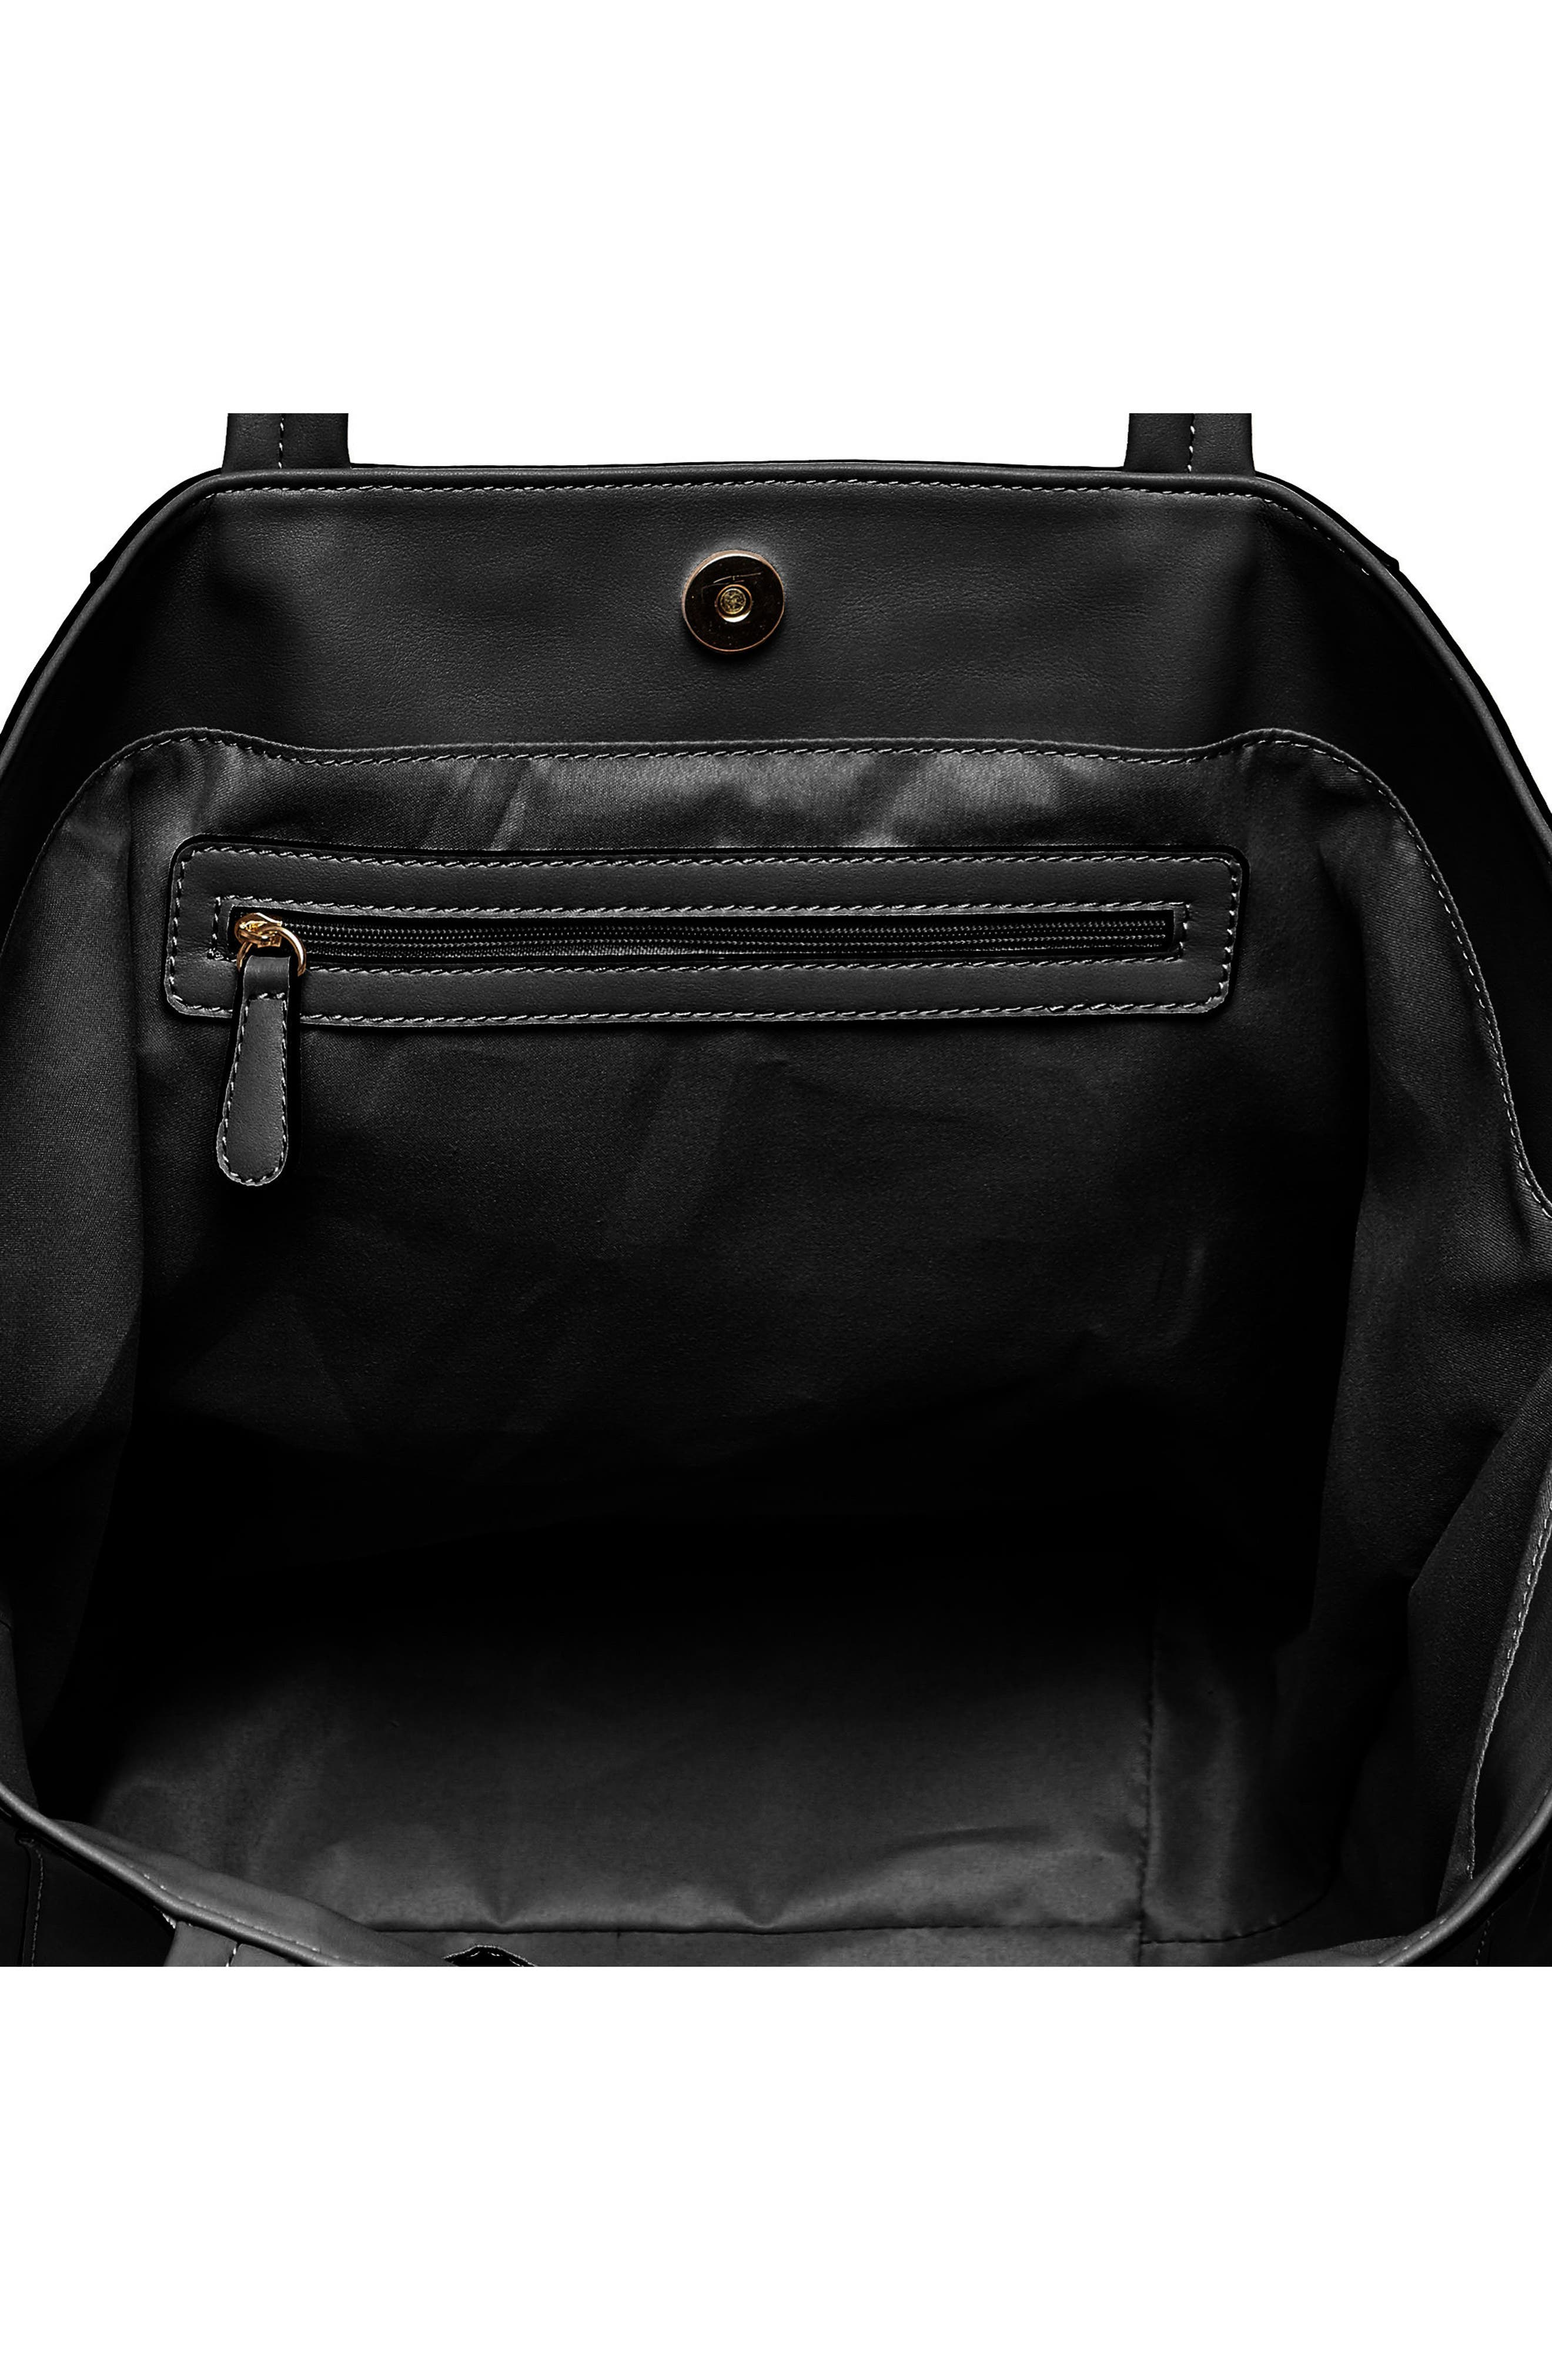 Every Girl Vegan Leather Tote,                             Alternate thumbnail 2, color,                             Black